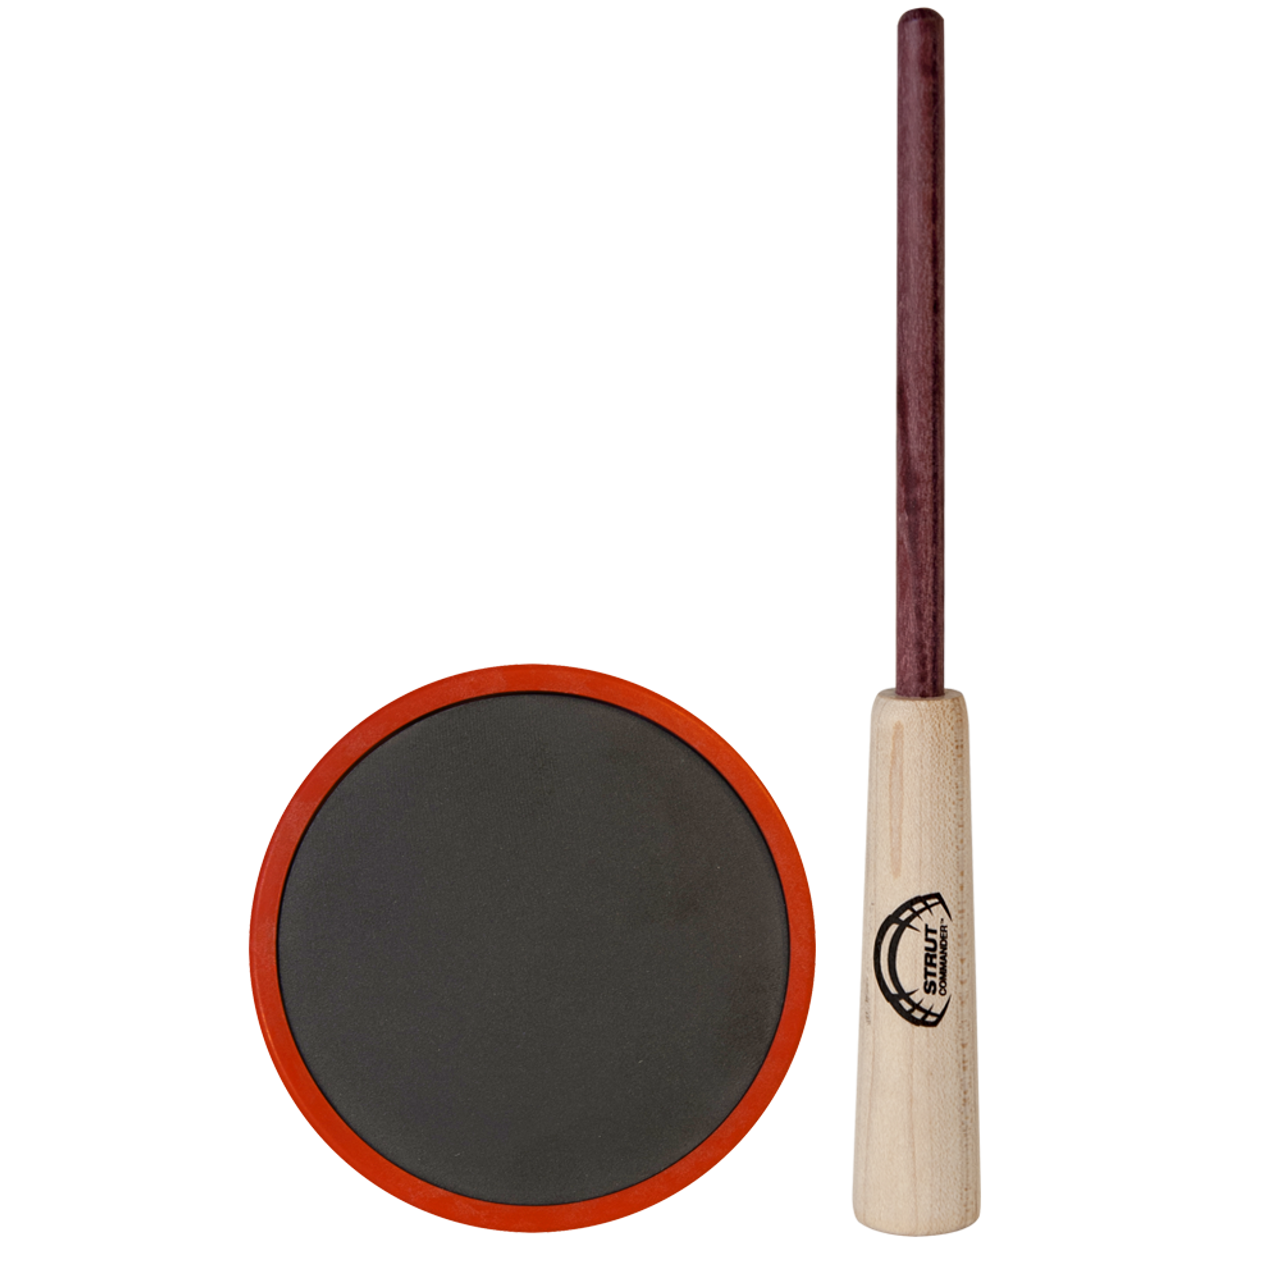 The Polycarbonate Strut Commander Slate pot call is durable, effective and affordable. This call features a red polycarbonate pot, a slate surface capable of producing a more mellow, raspy variety of yelps, clucks, cutts, and purrs, and a 2-piece purple heart wood striker.